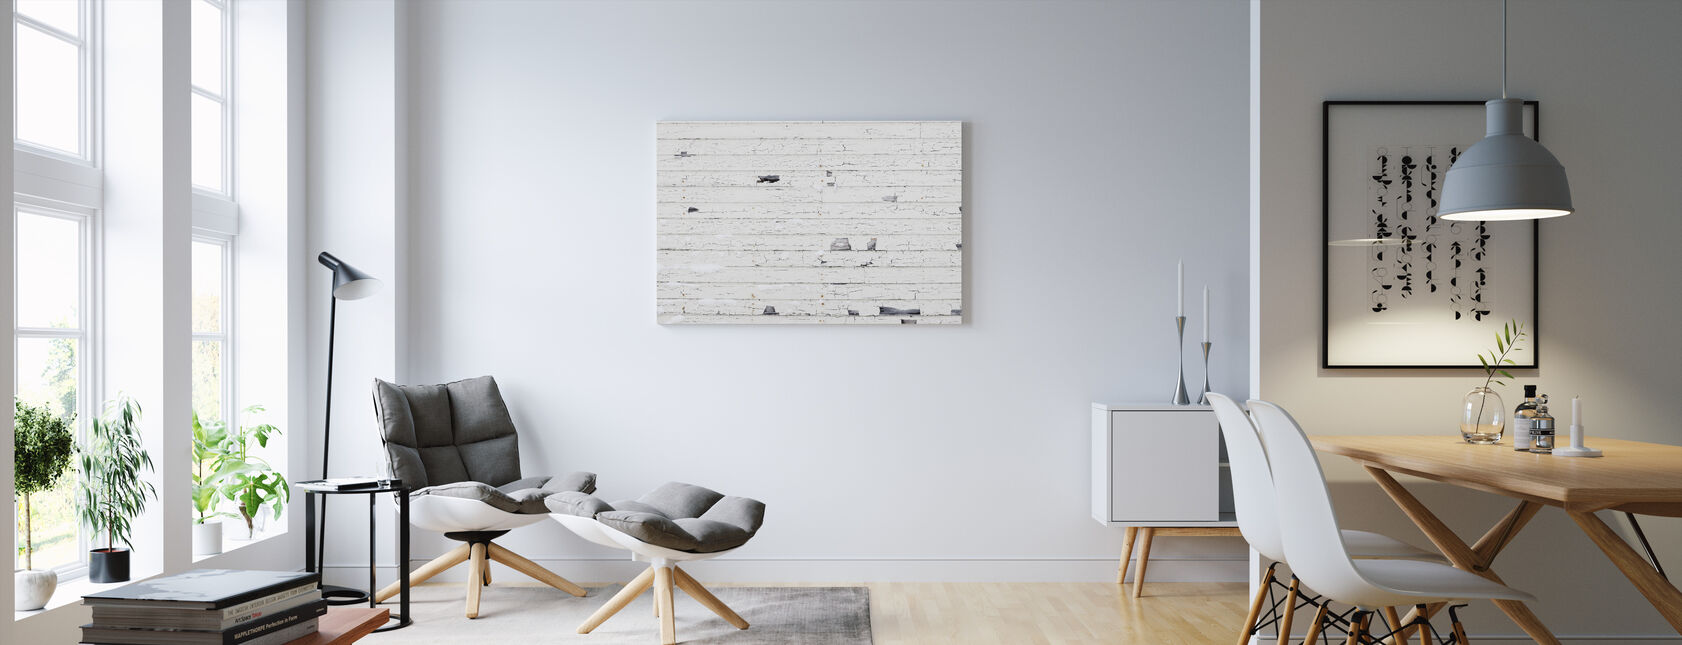 White canvas prints